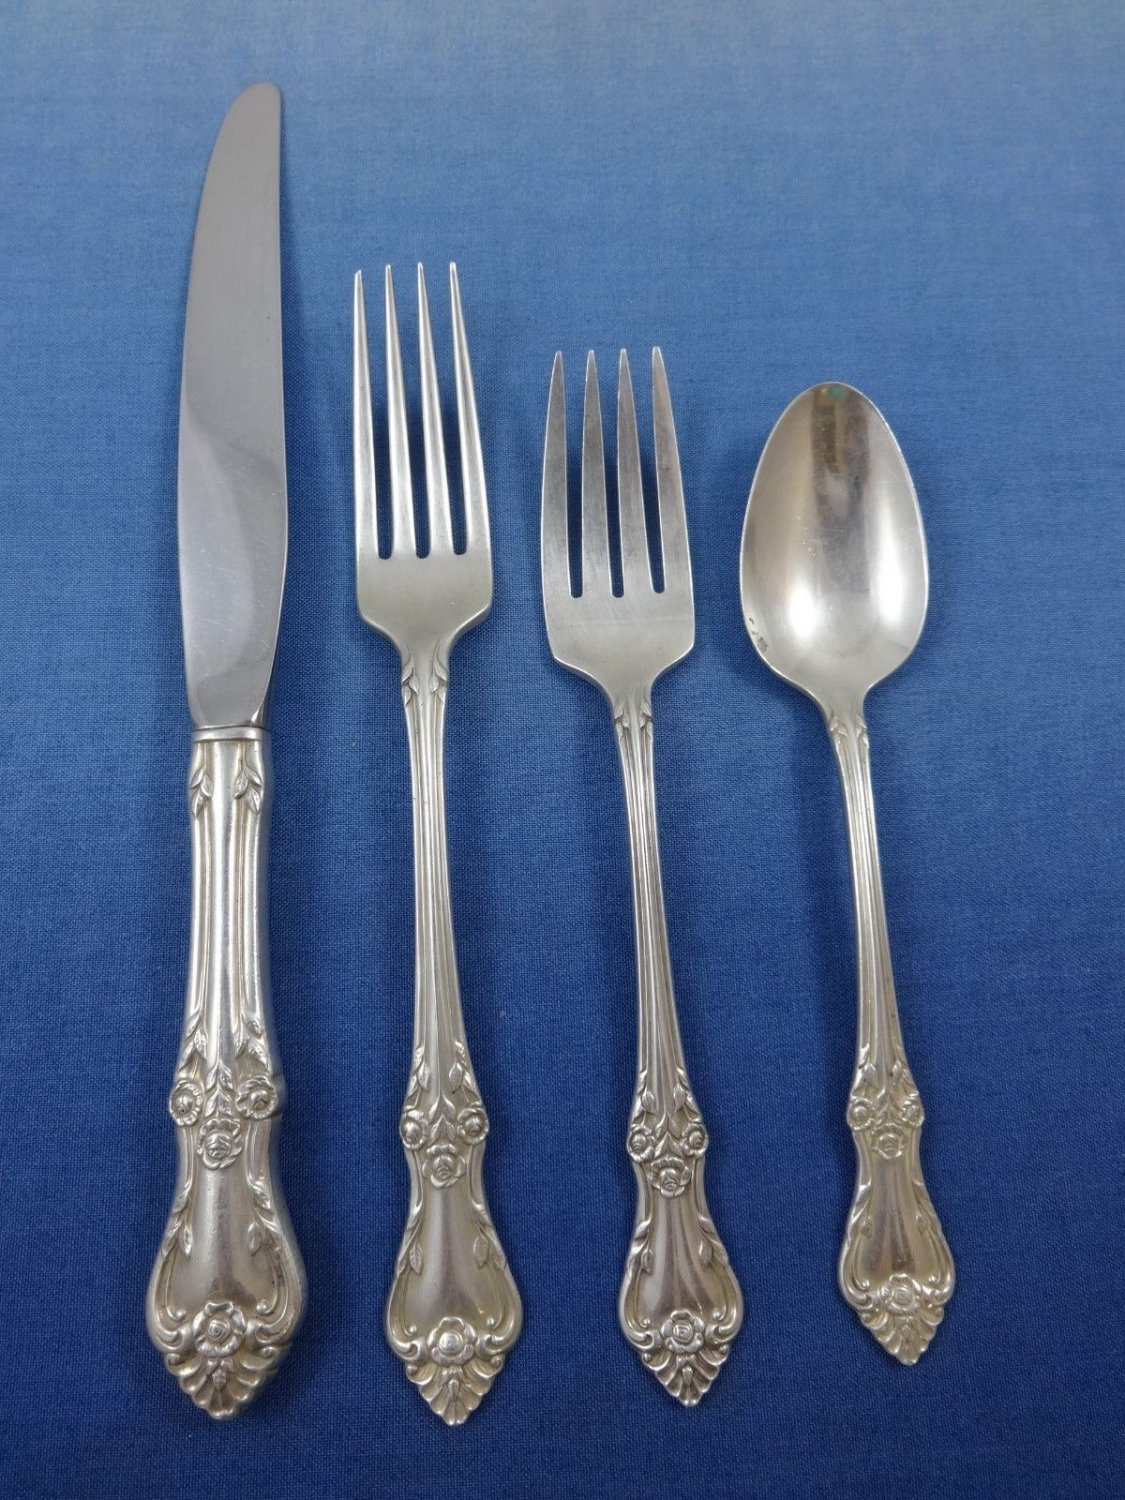 Afterglow by Oneida Sterling Silver Flatware Set For 6 Service 24 Pieces